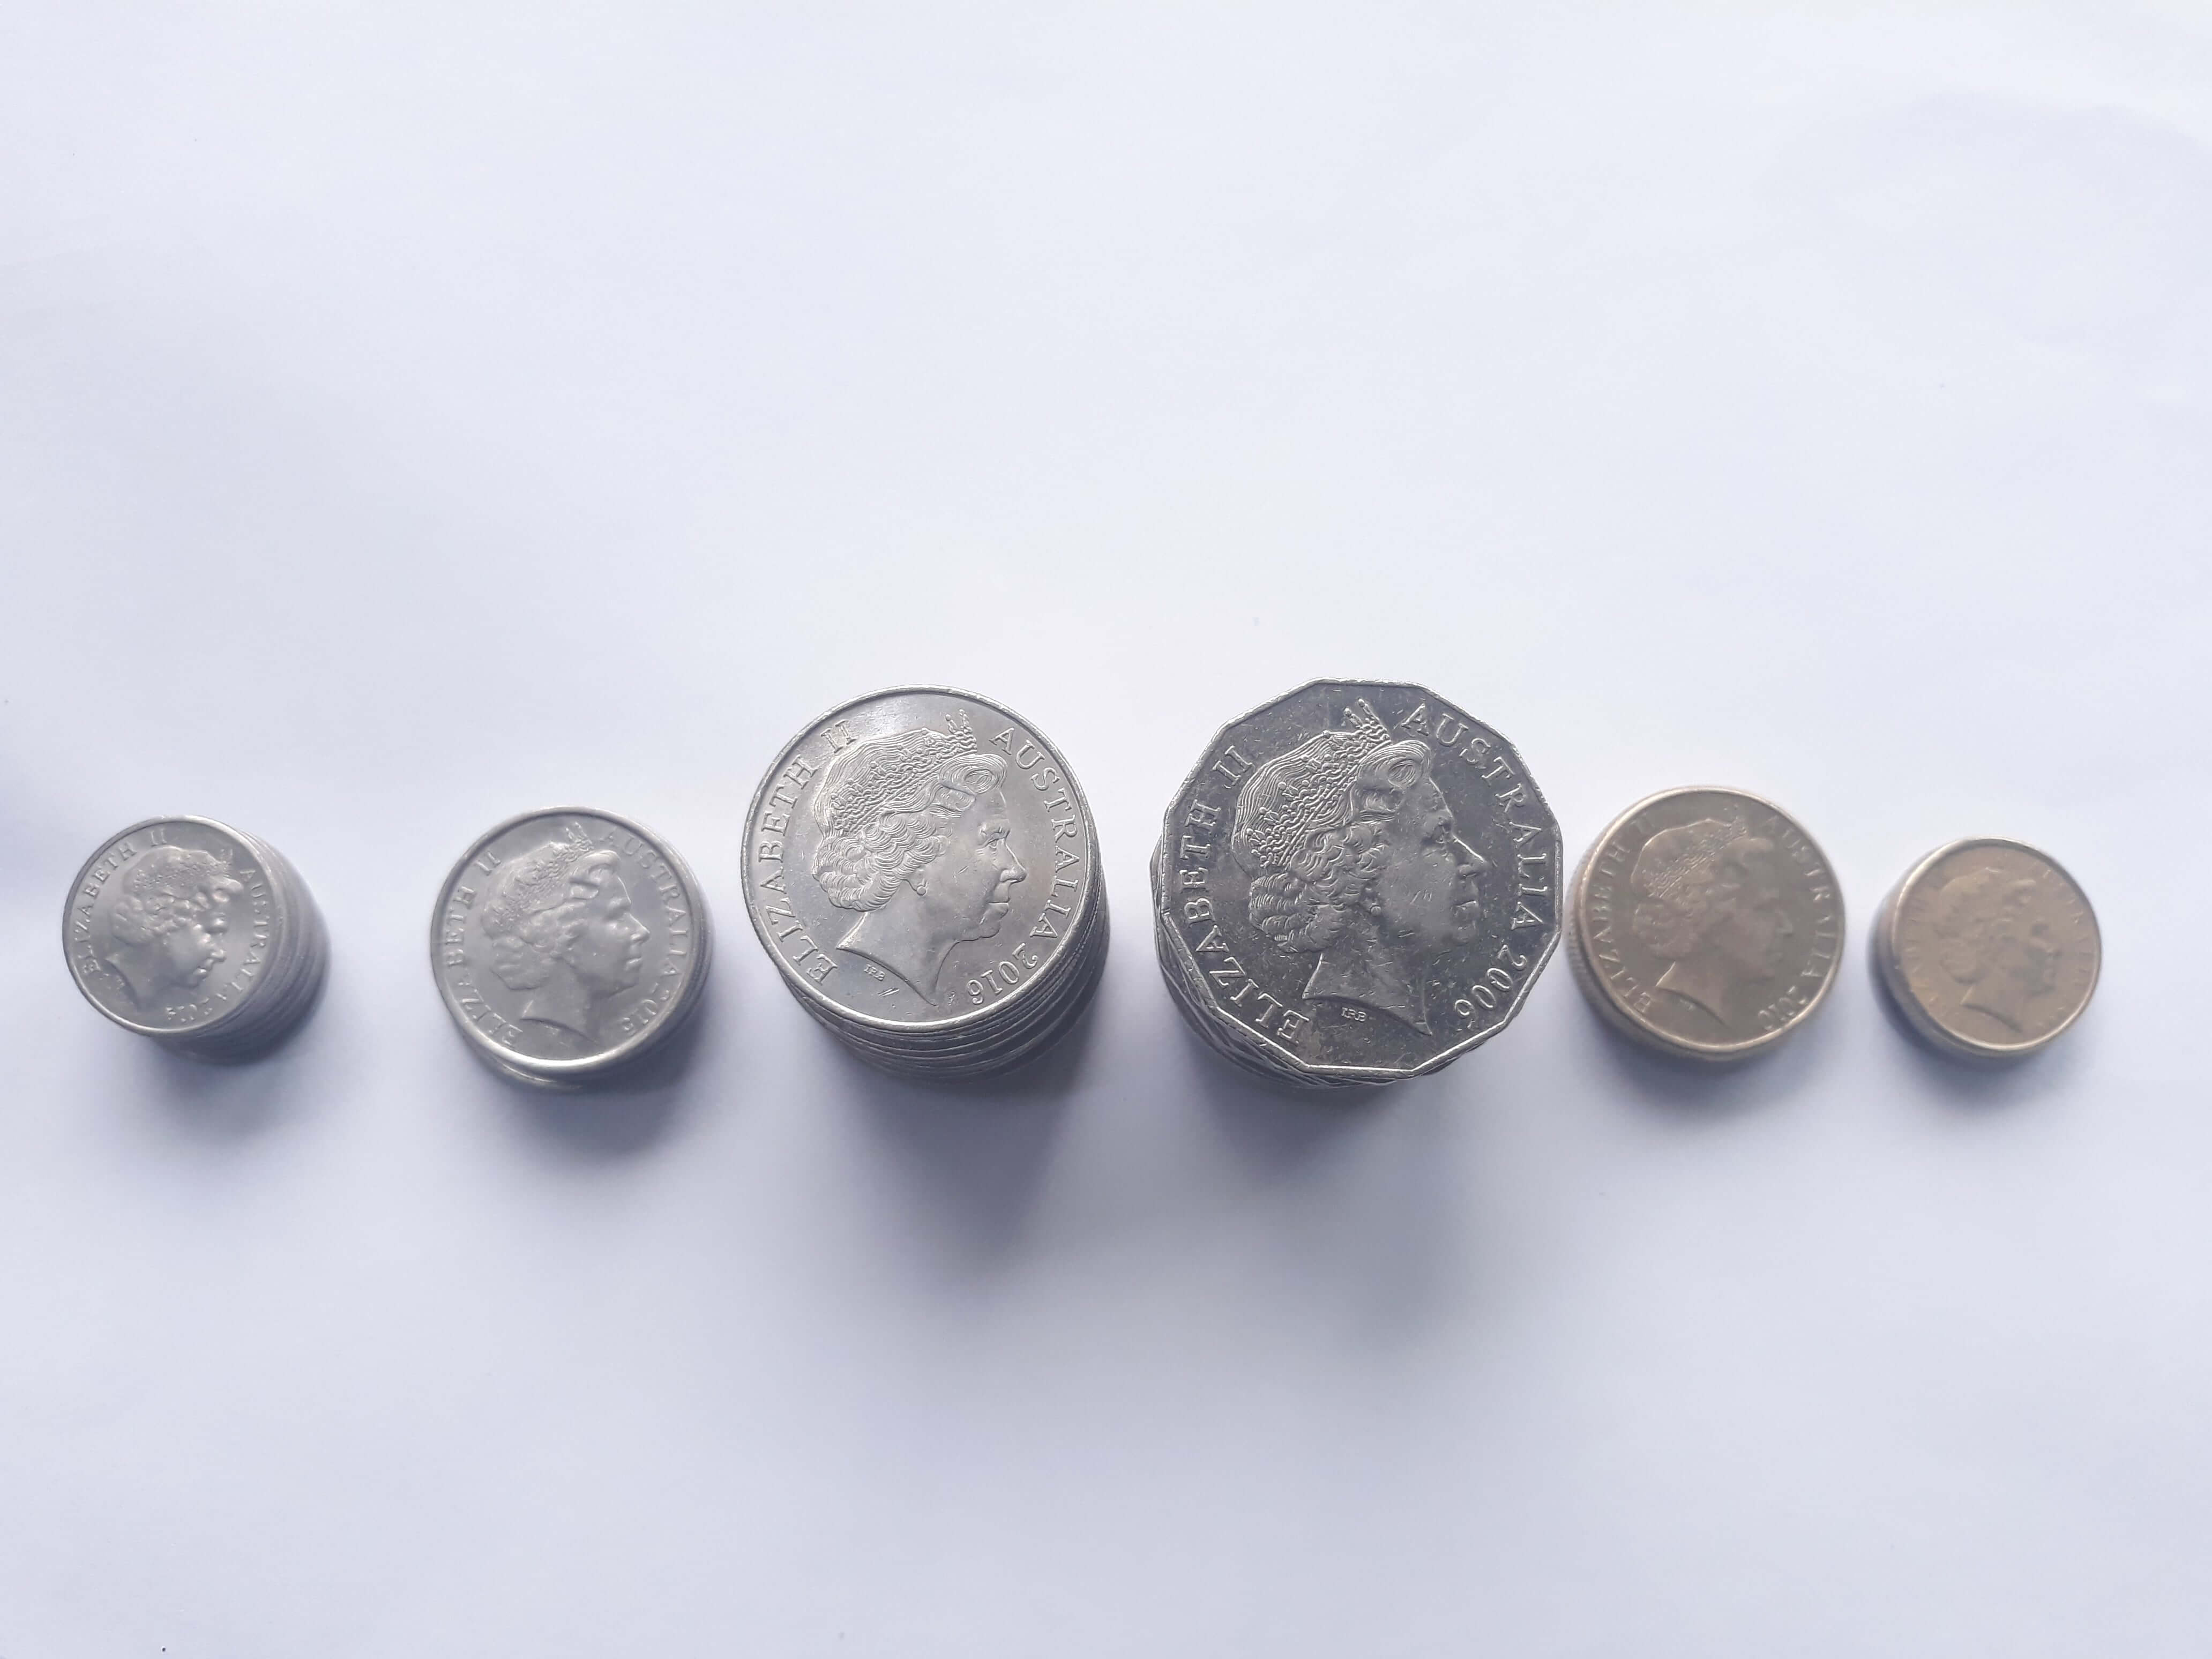 Horizontal row of Australian coins on a grey tabletop